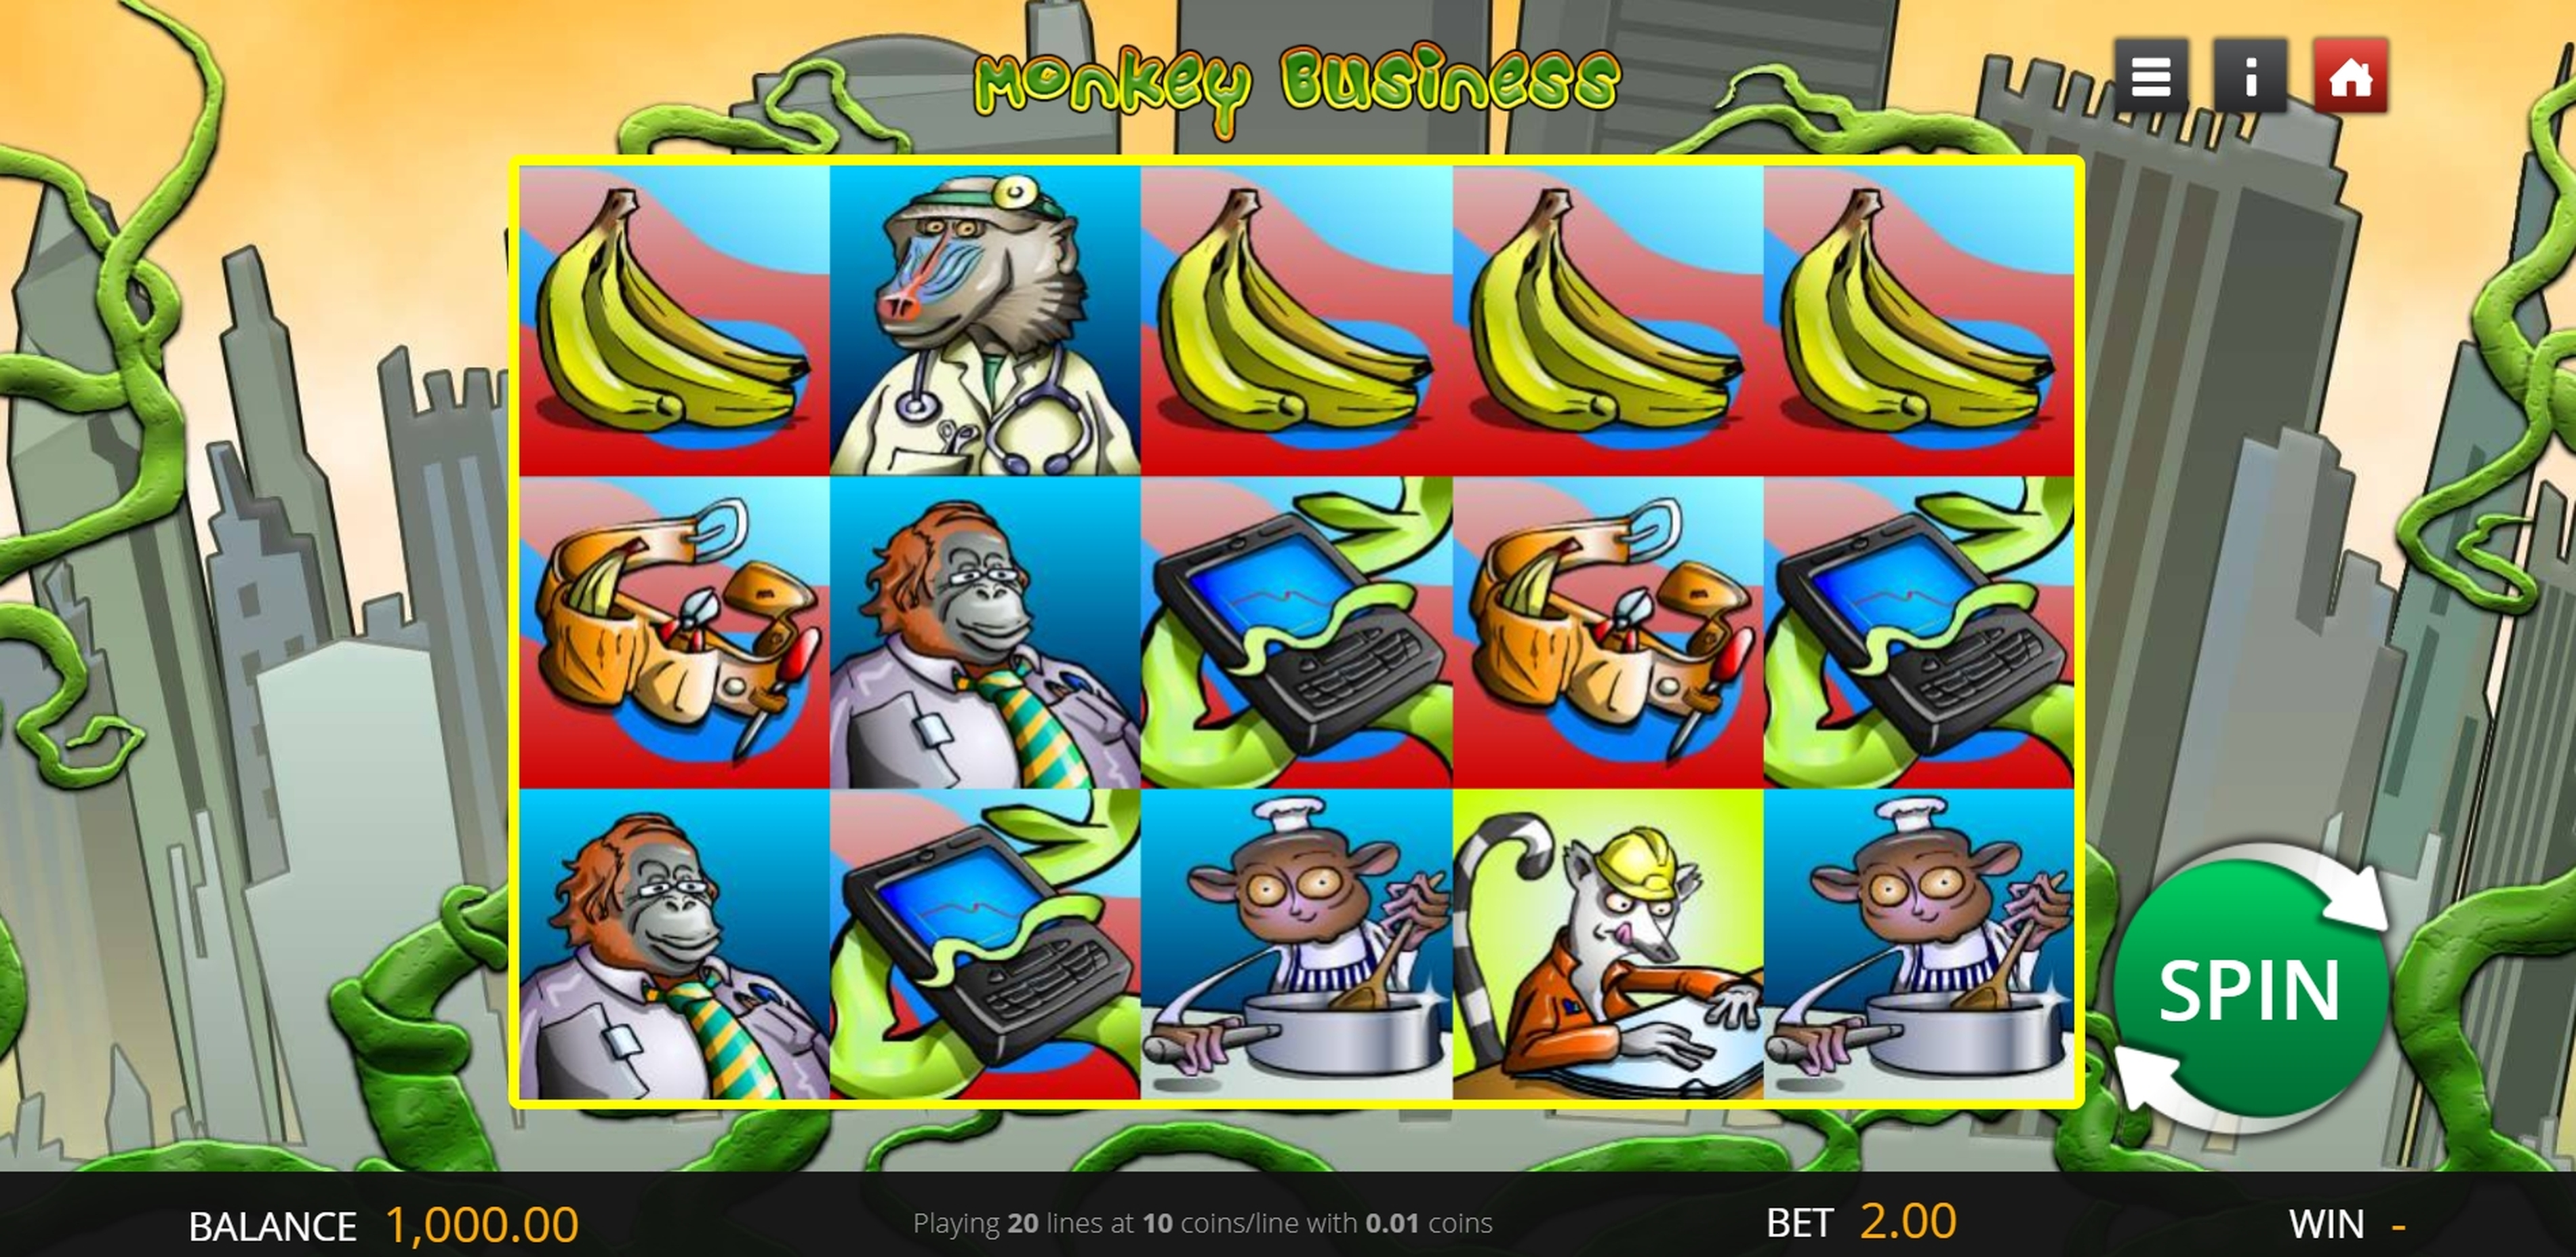 Reels in Monkey Business (Genii) Slot Game by Genii